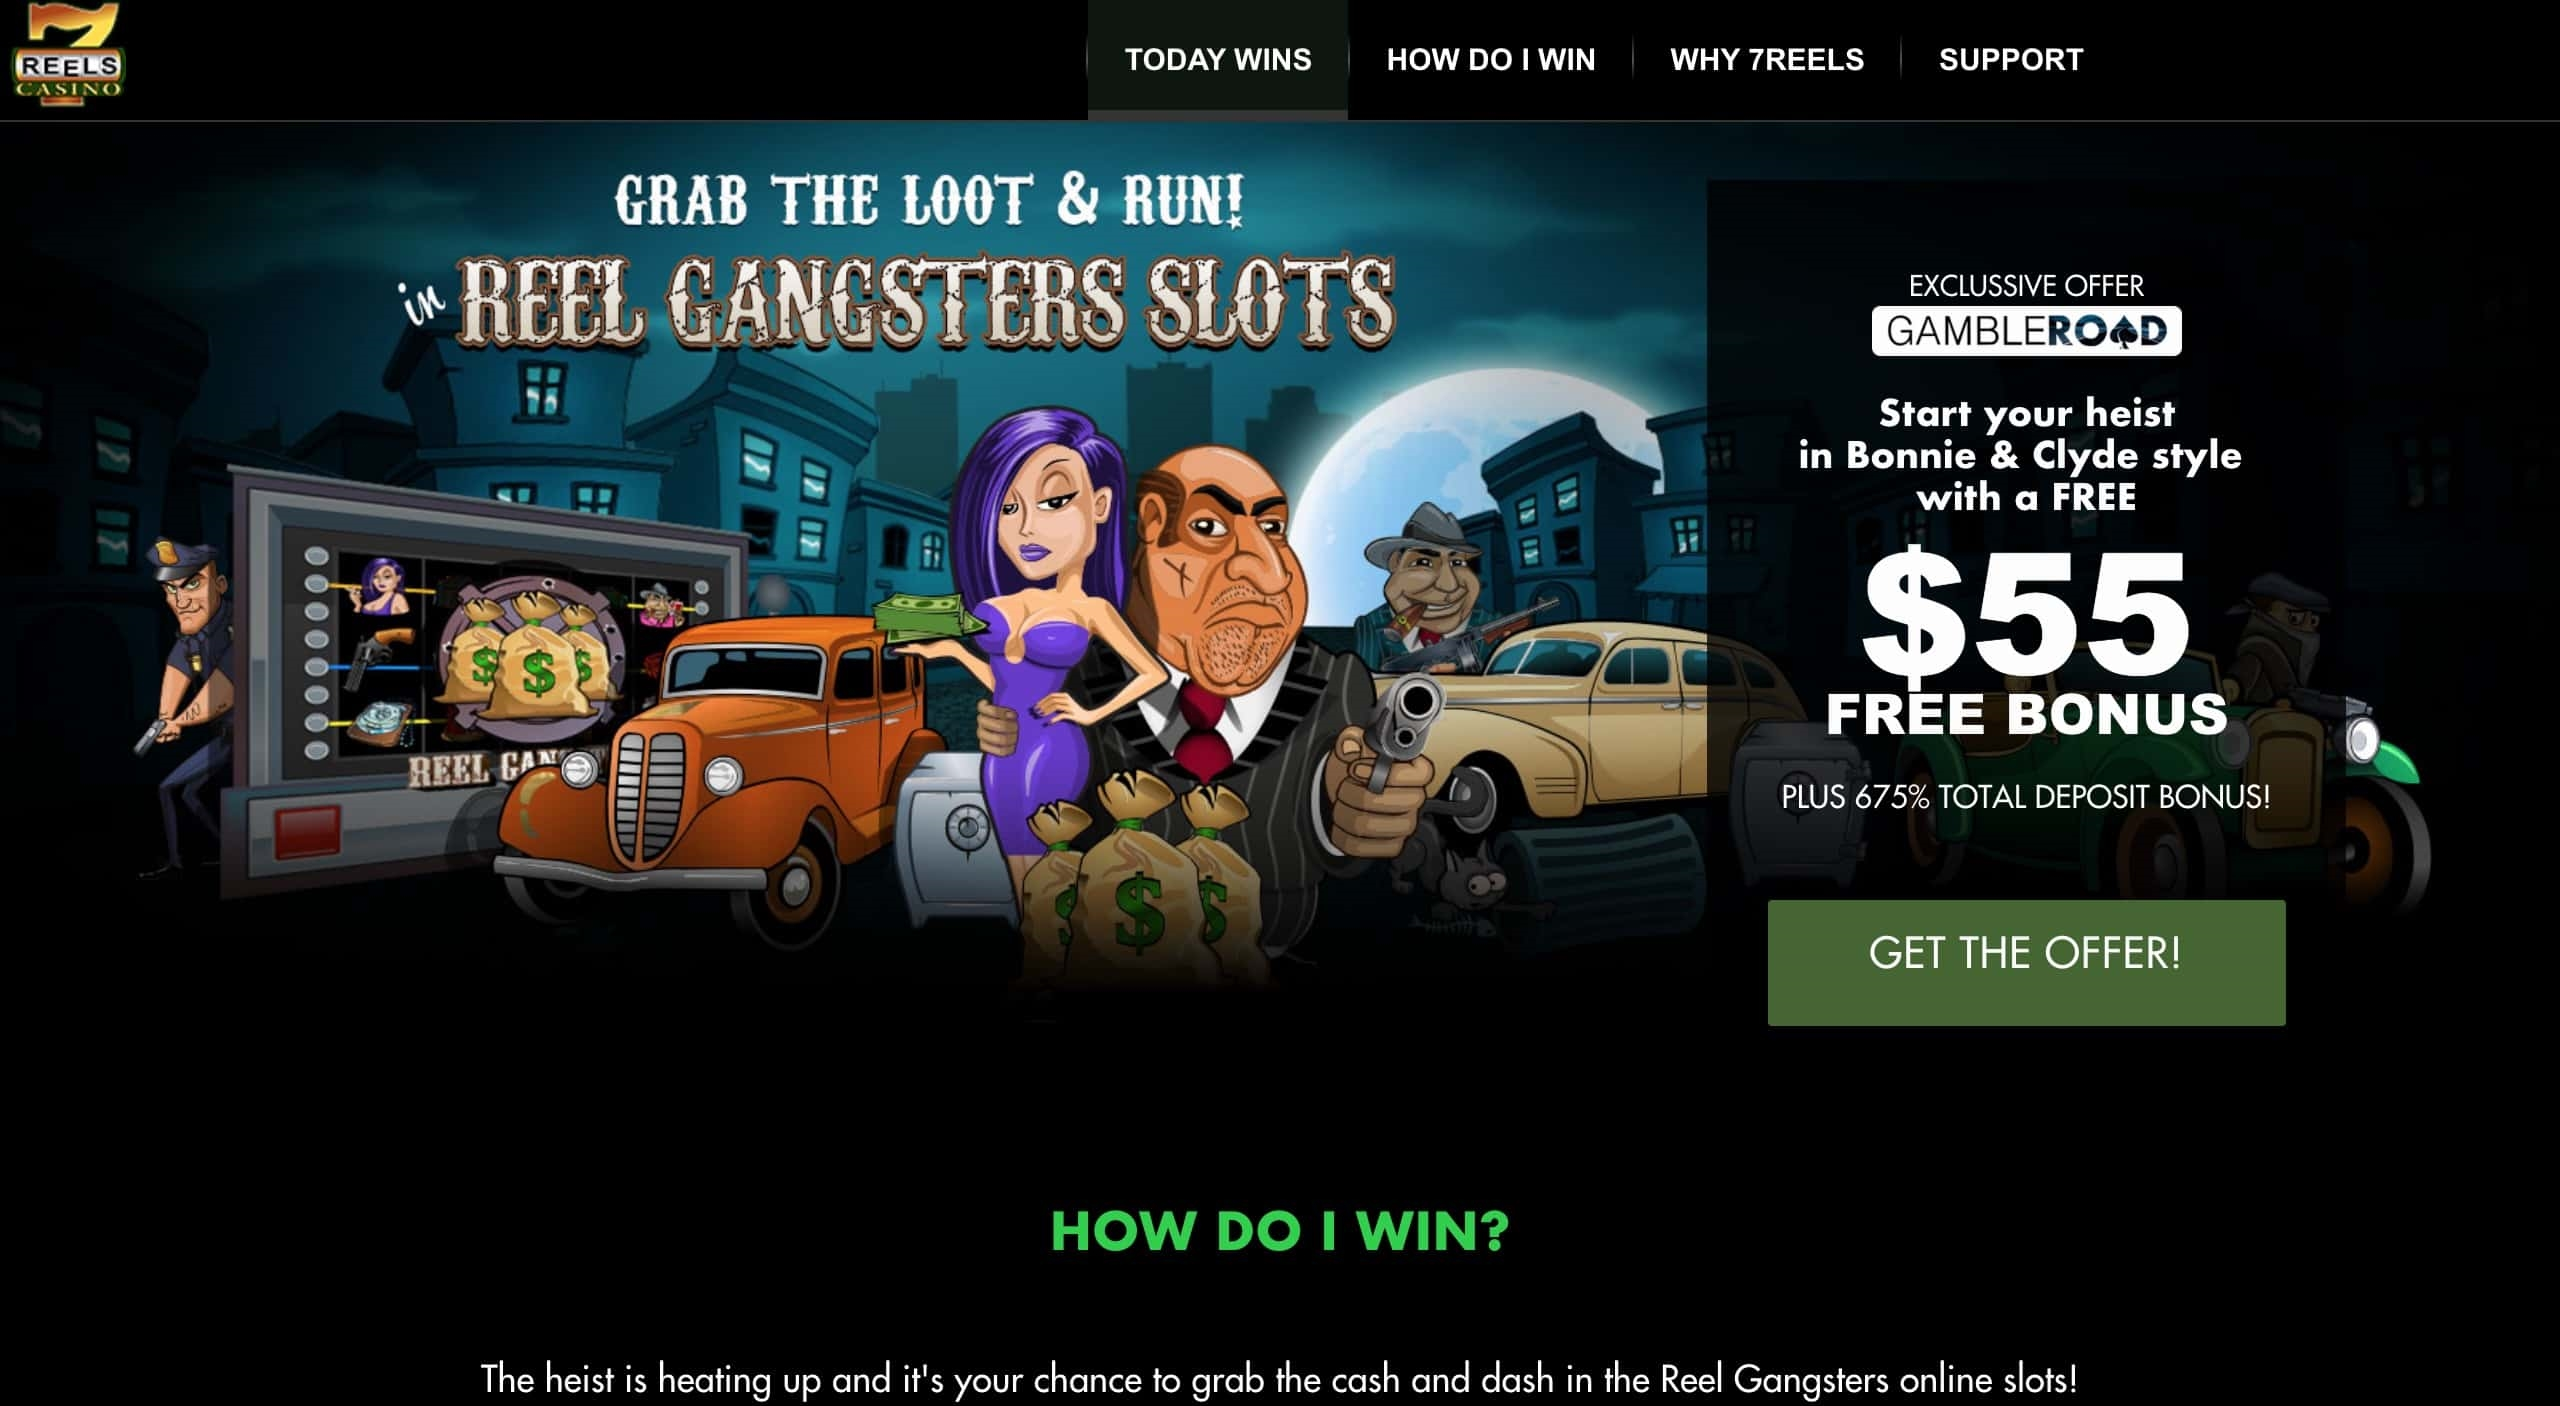 770% casino match bonus at Sloto'Cash